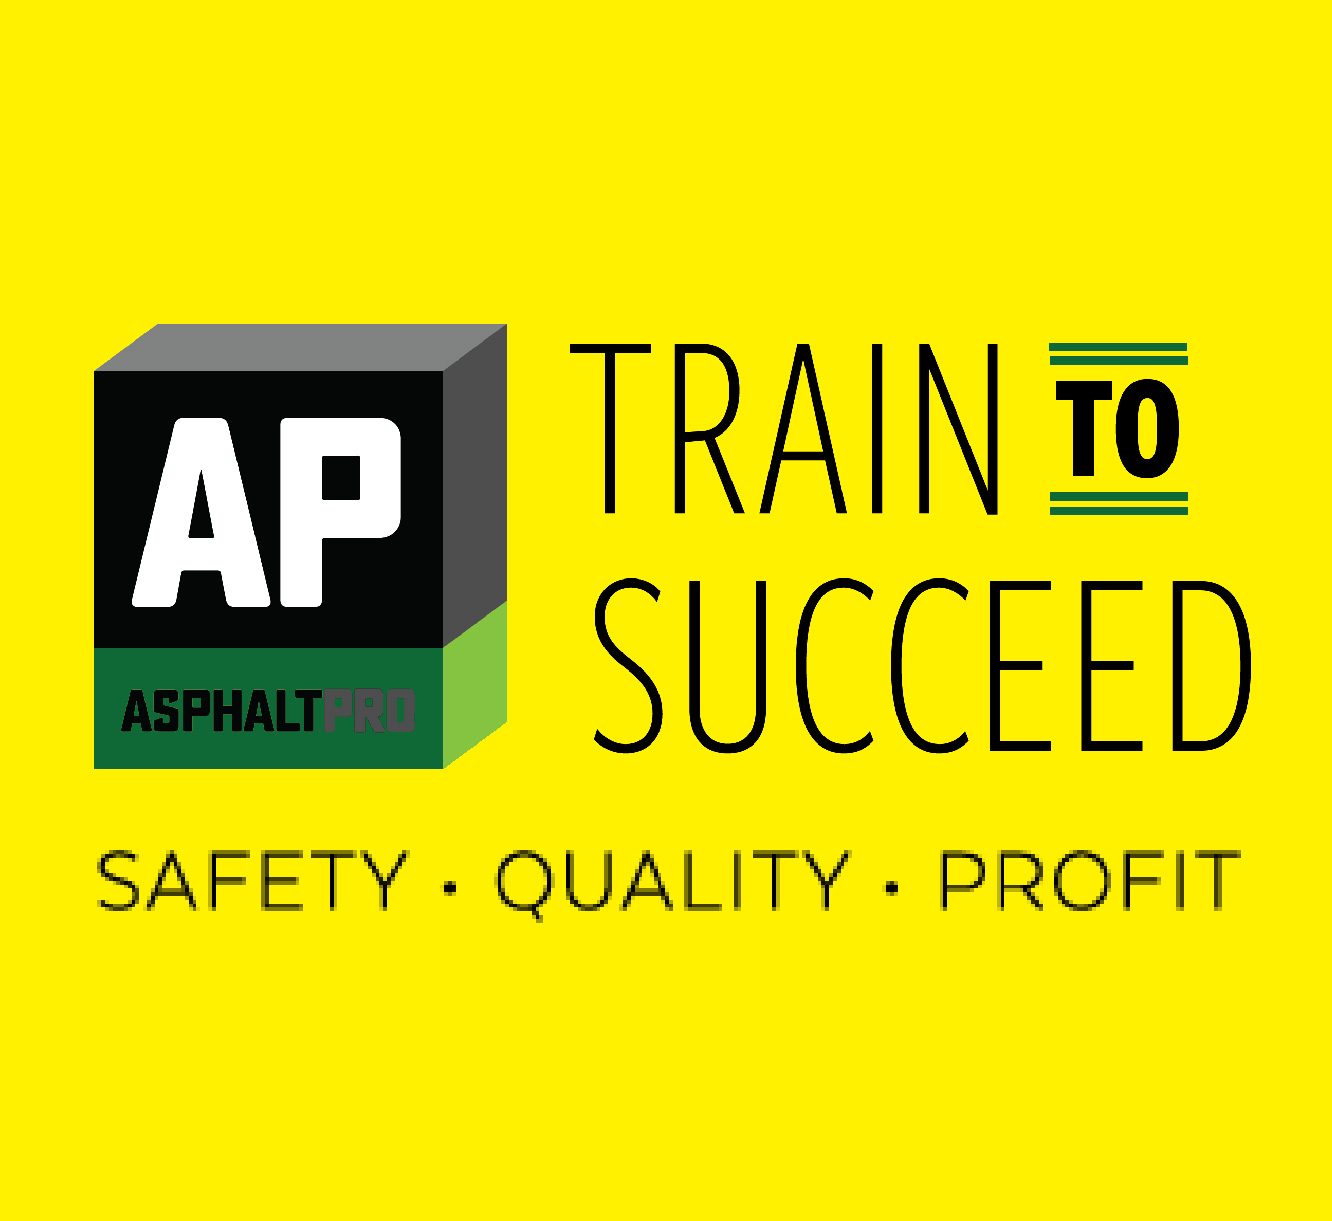 Train To Succeed Yellow Square